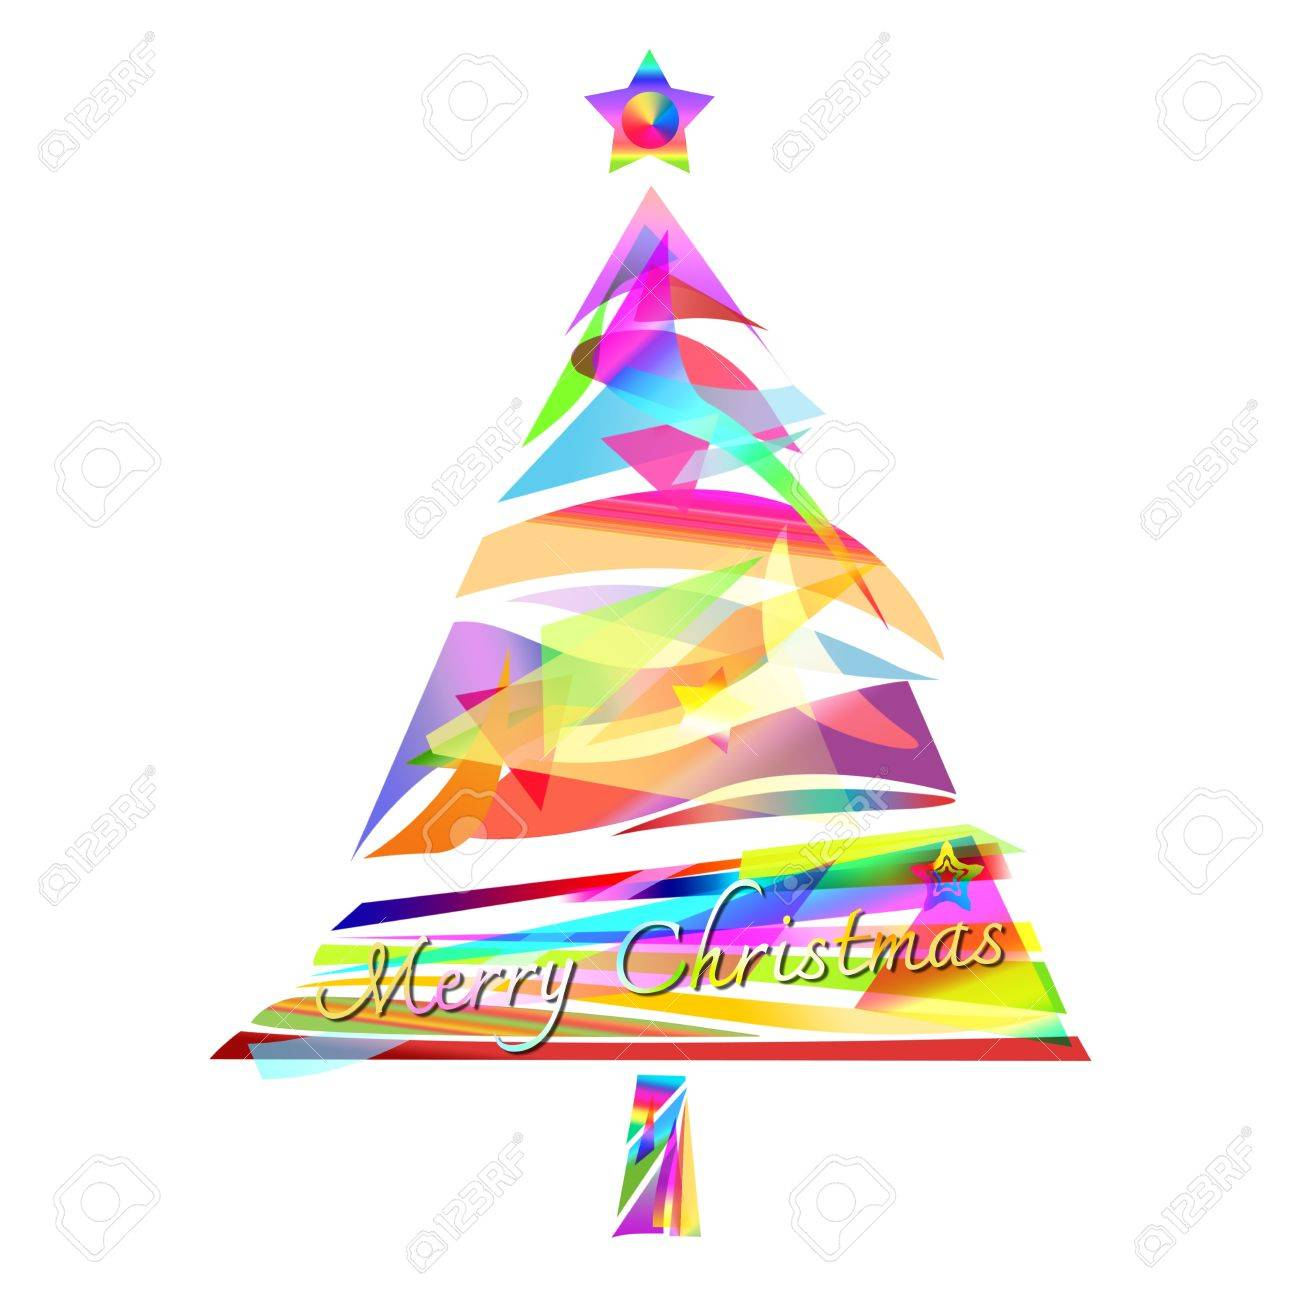 christmas tree design by abstract shape Stock Photo - 15320222